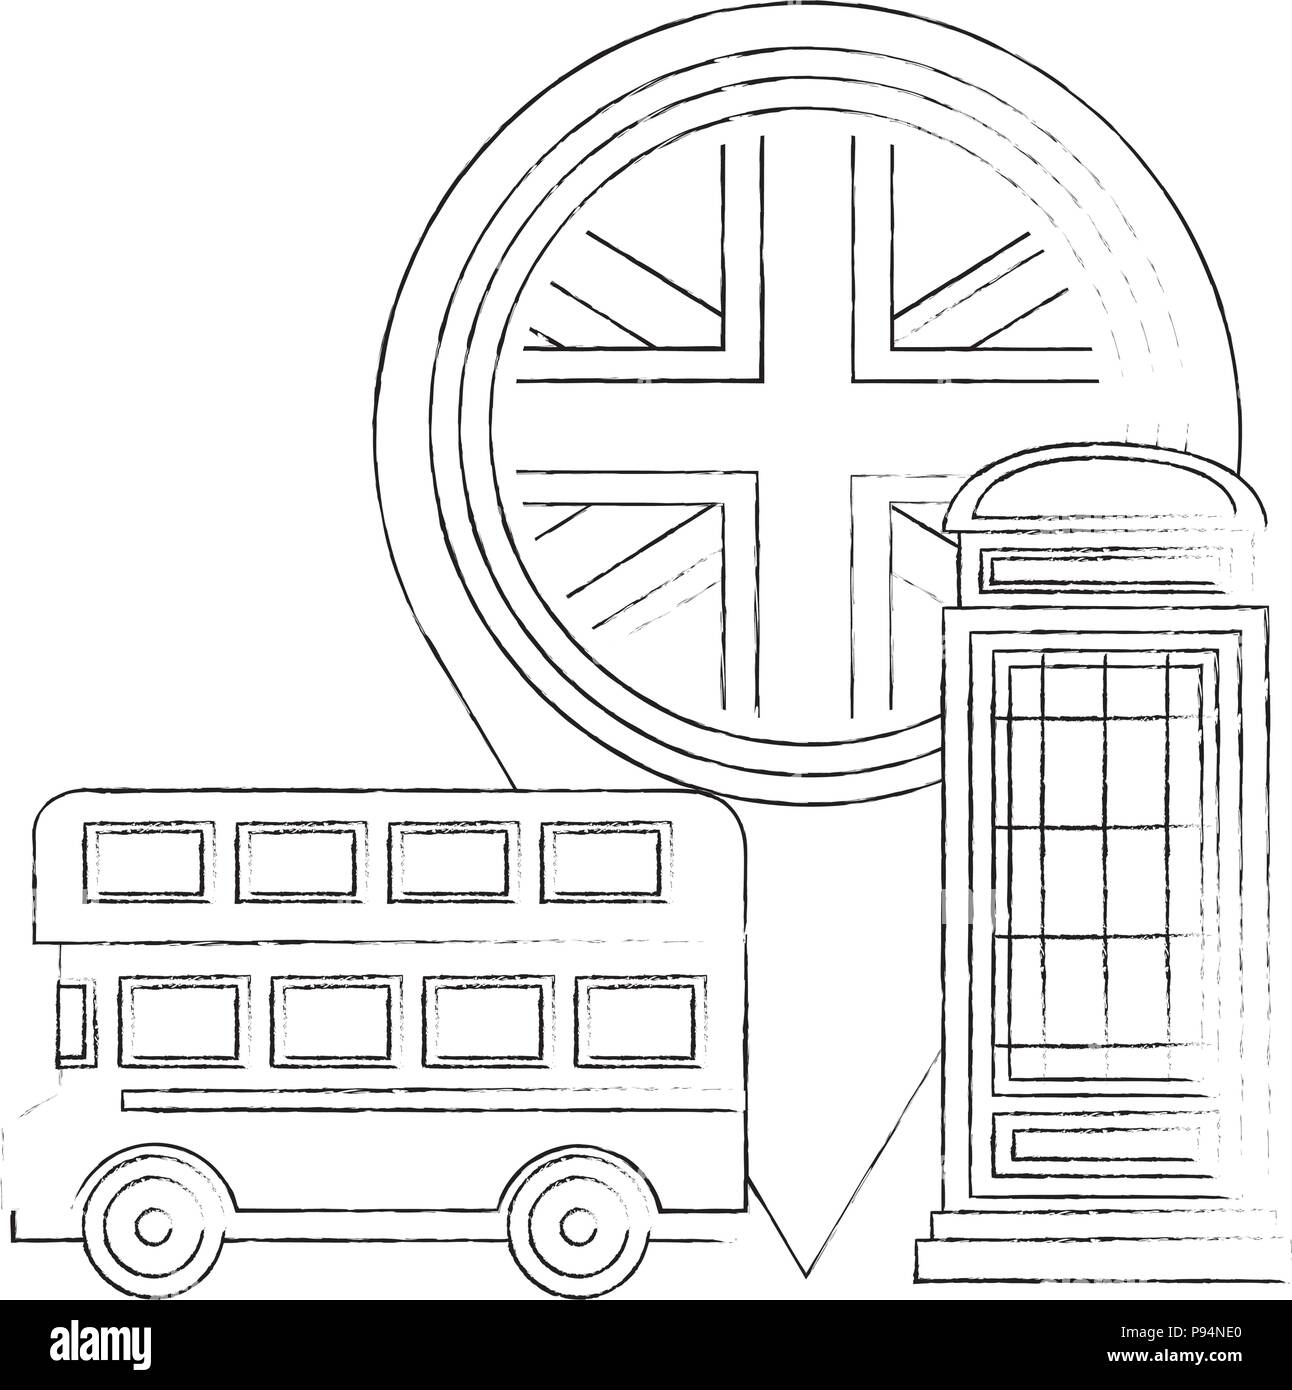 london double decker bus telephone box and flag pin location - Stock Image